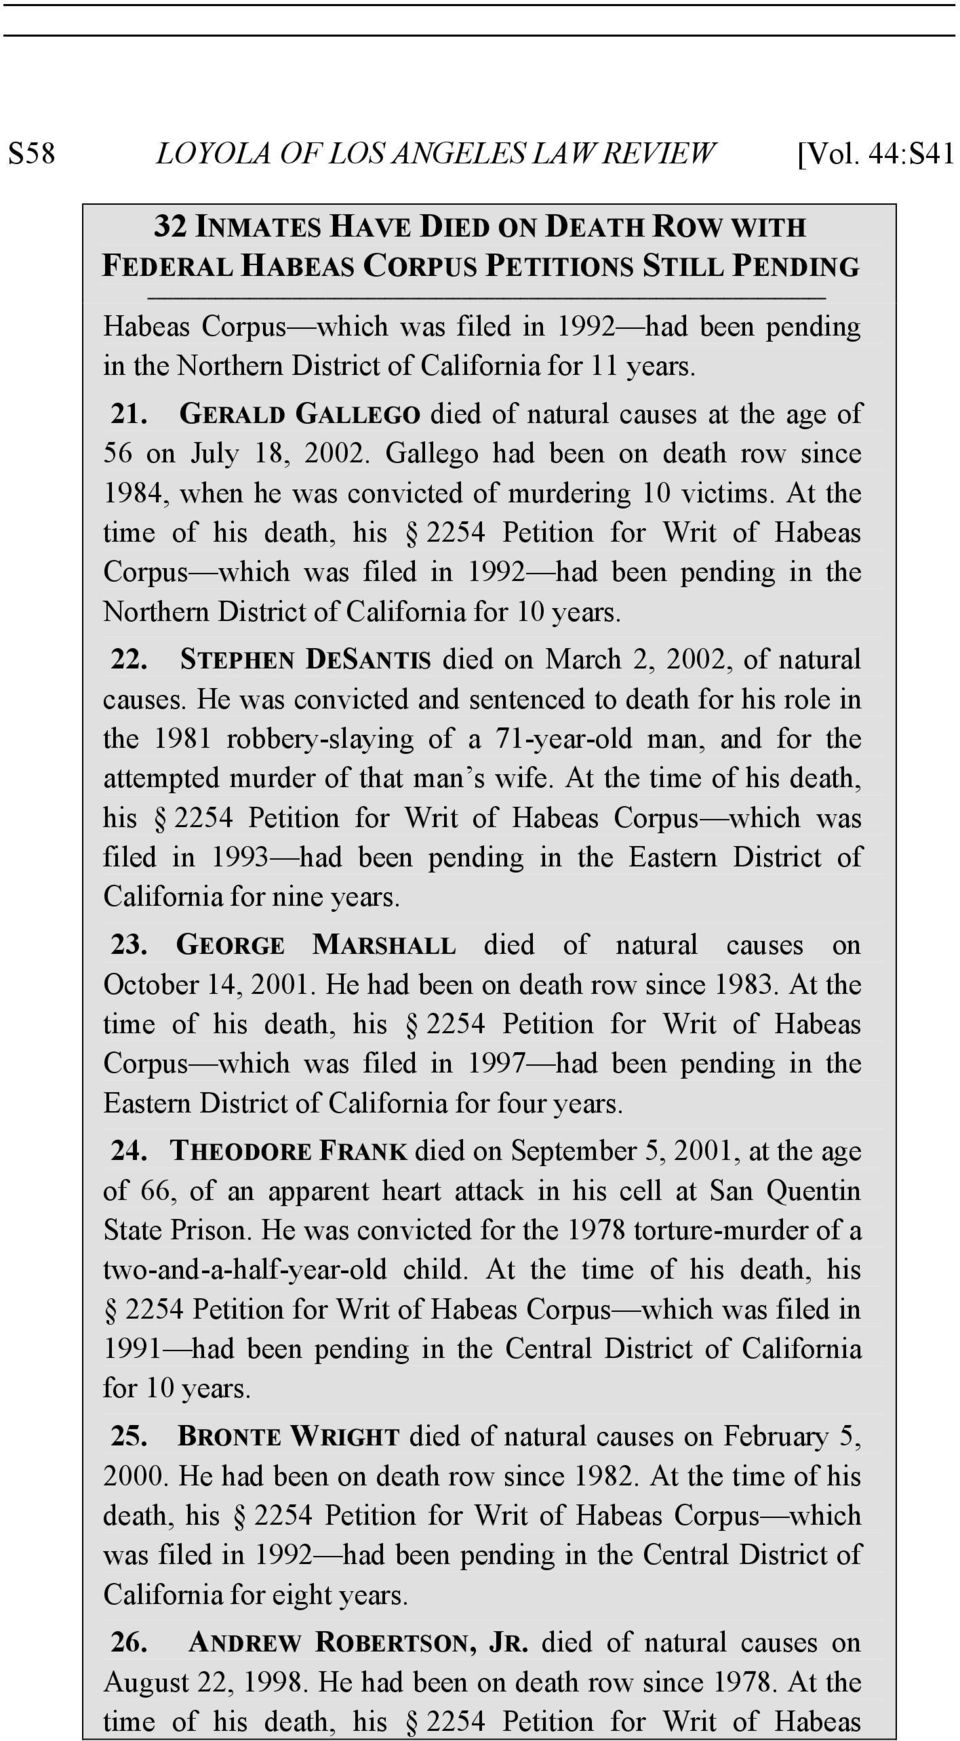 21. GERALD GALLEGO died of natural causes at the age of 56 on July 18, 2002. Gallego had been on death row since 1984, when he was convicted of murdering 10 victims.